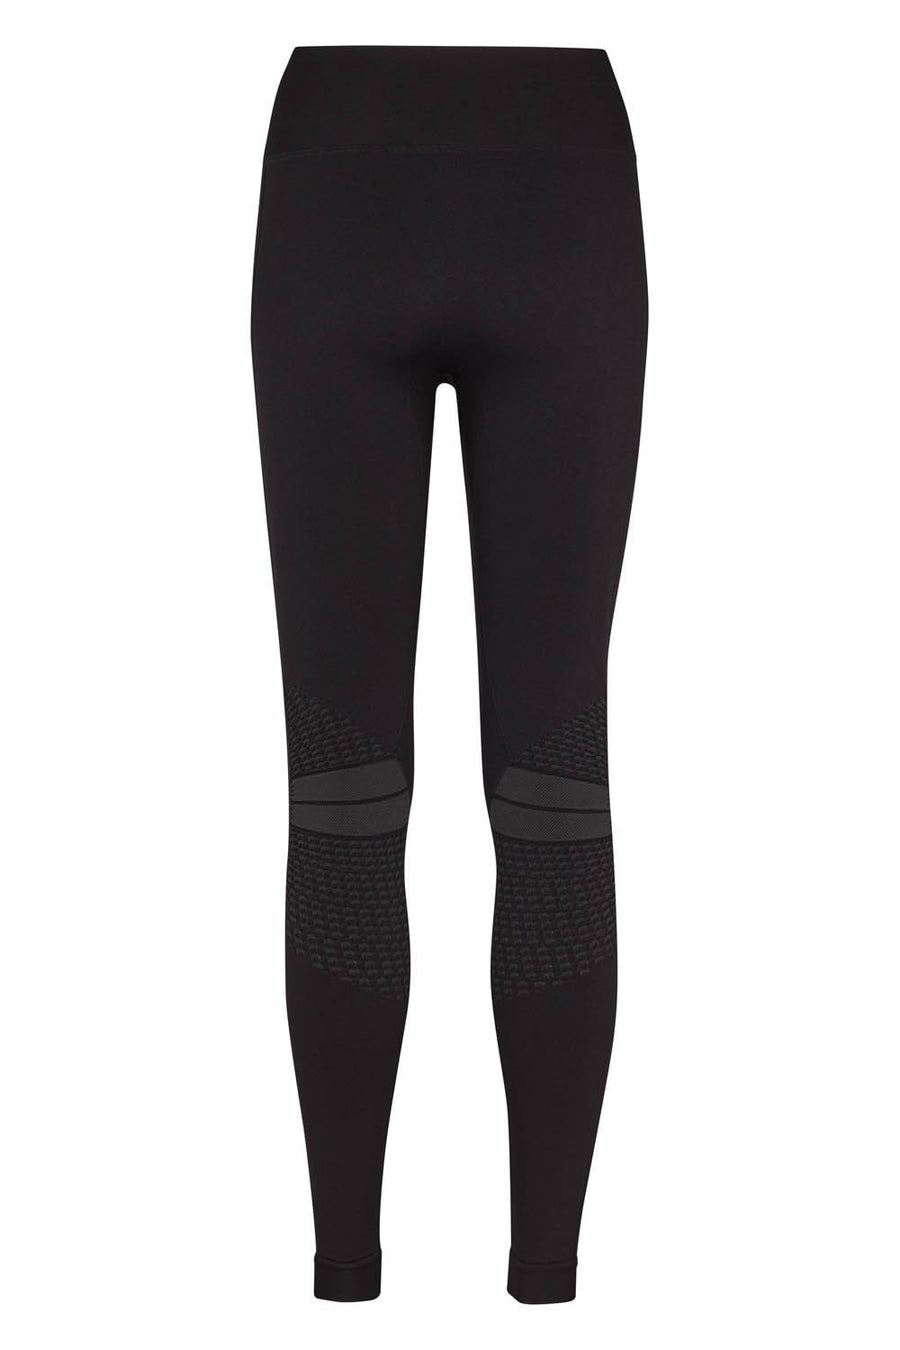 Beluga Classic Tights Long - Black